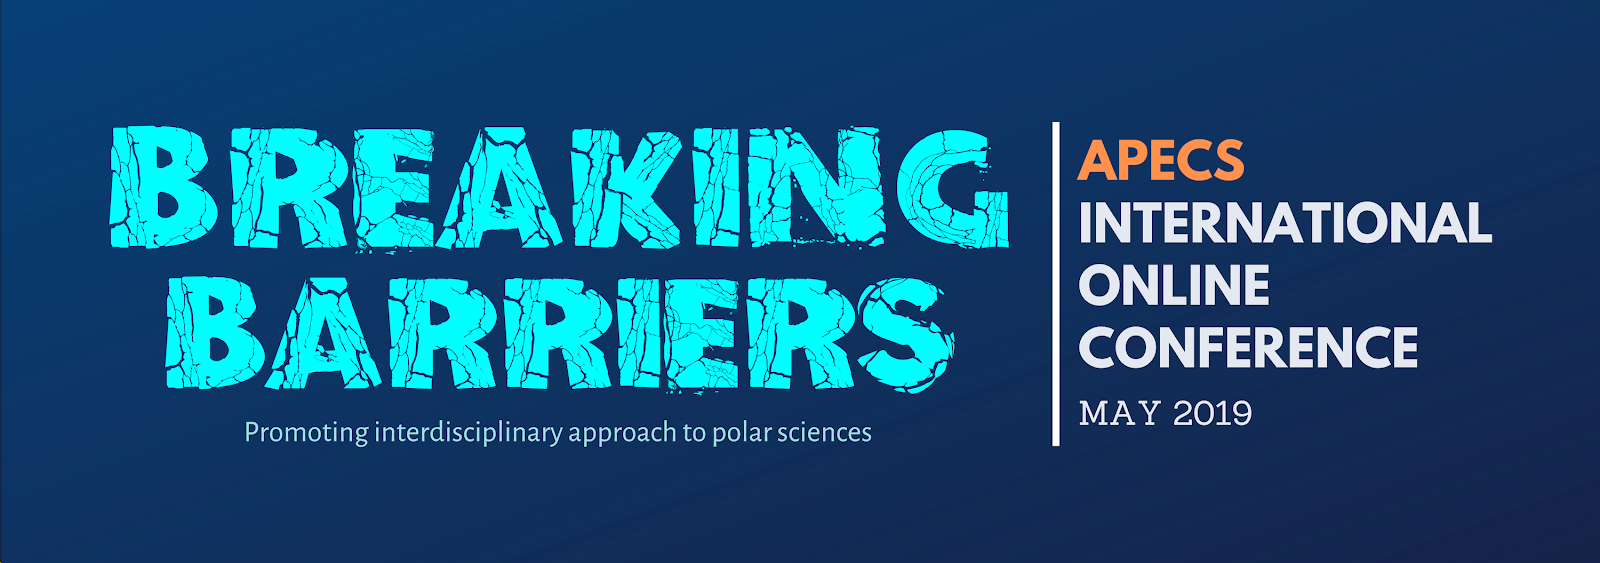 Association of Polar Early Career Scientists - APECS Online